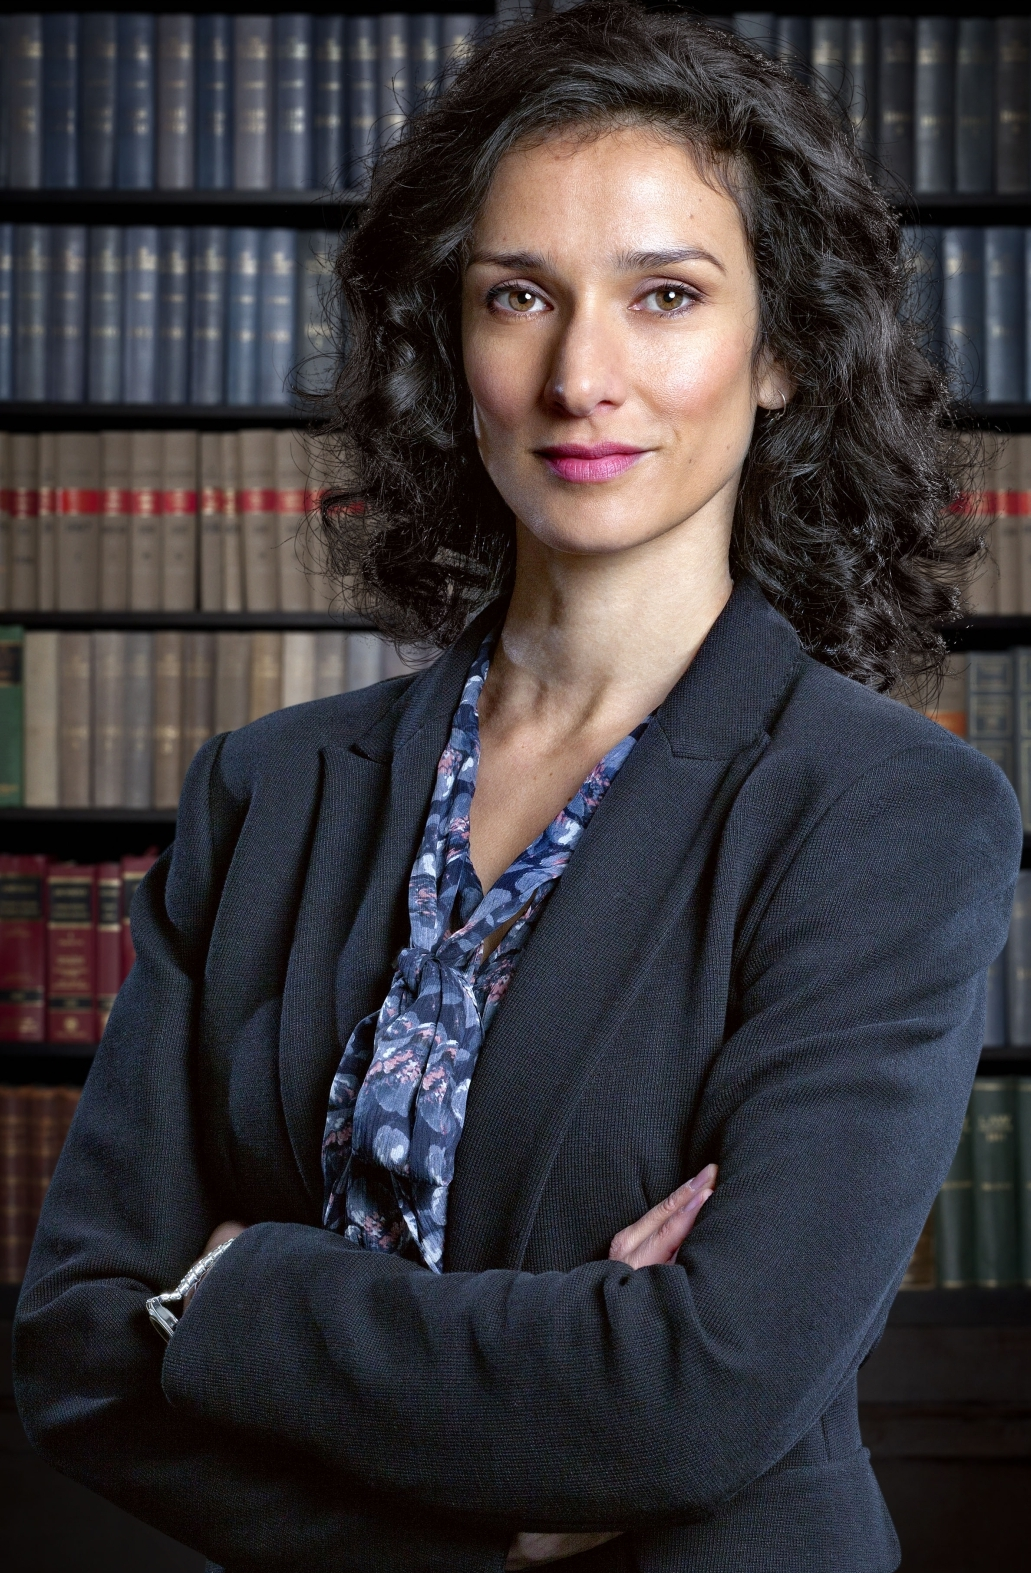 Watch Indira Varma (born 1973) video